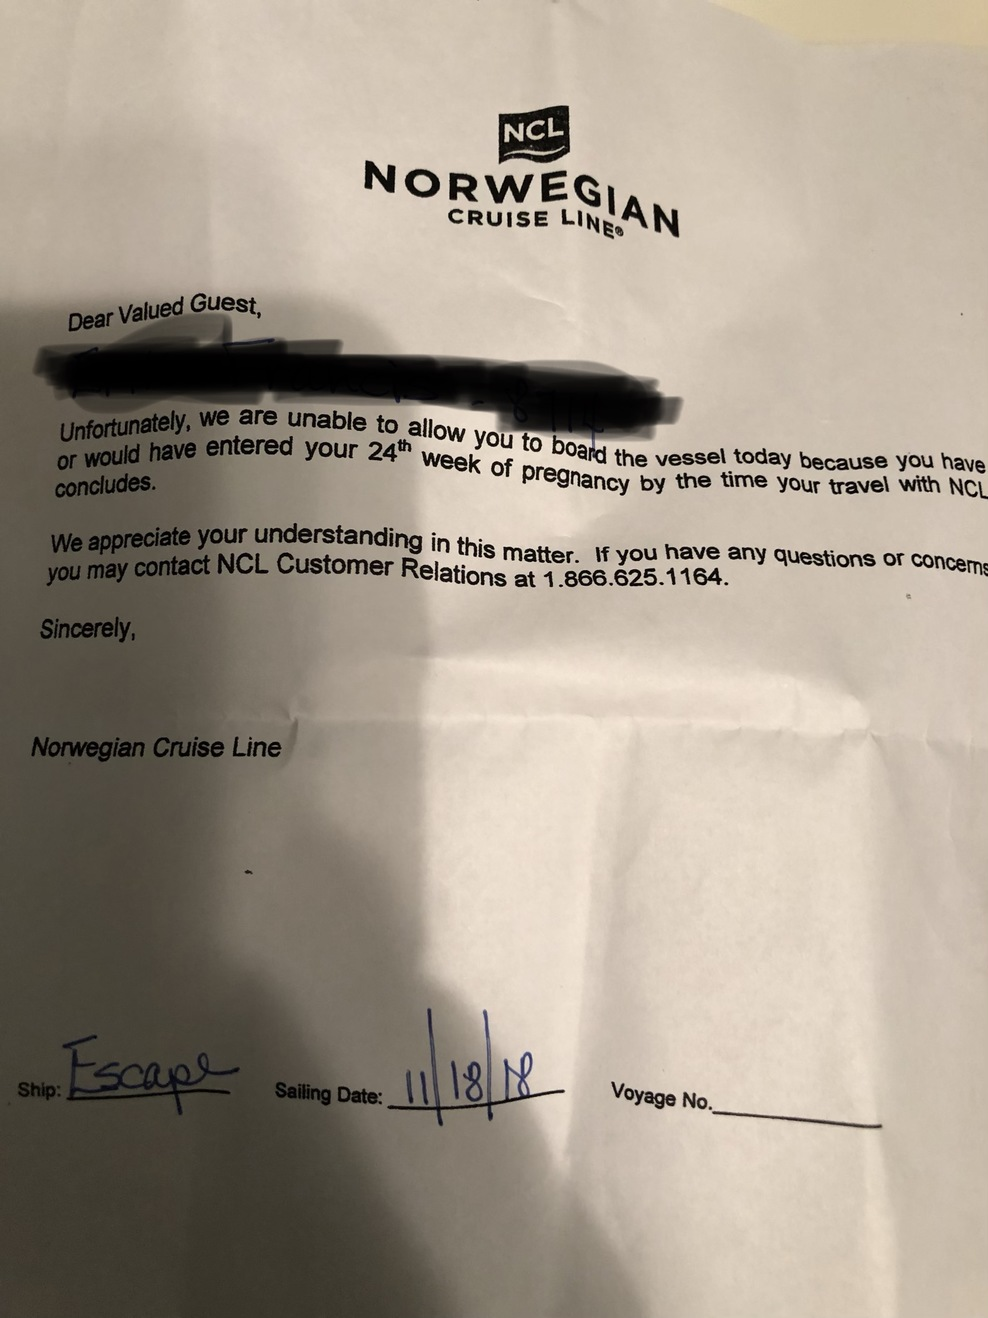 NCL's pre-drafted letter confirming I wasn't granted access to the ship